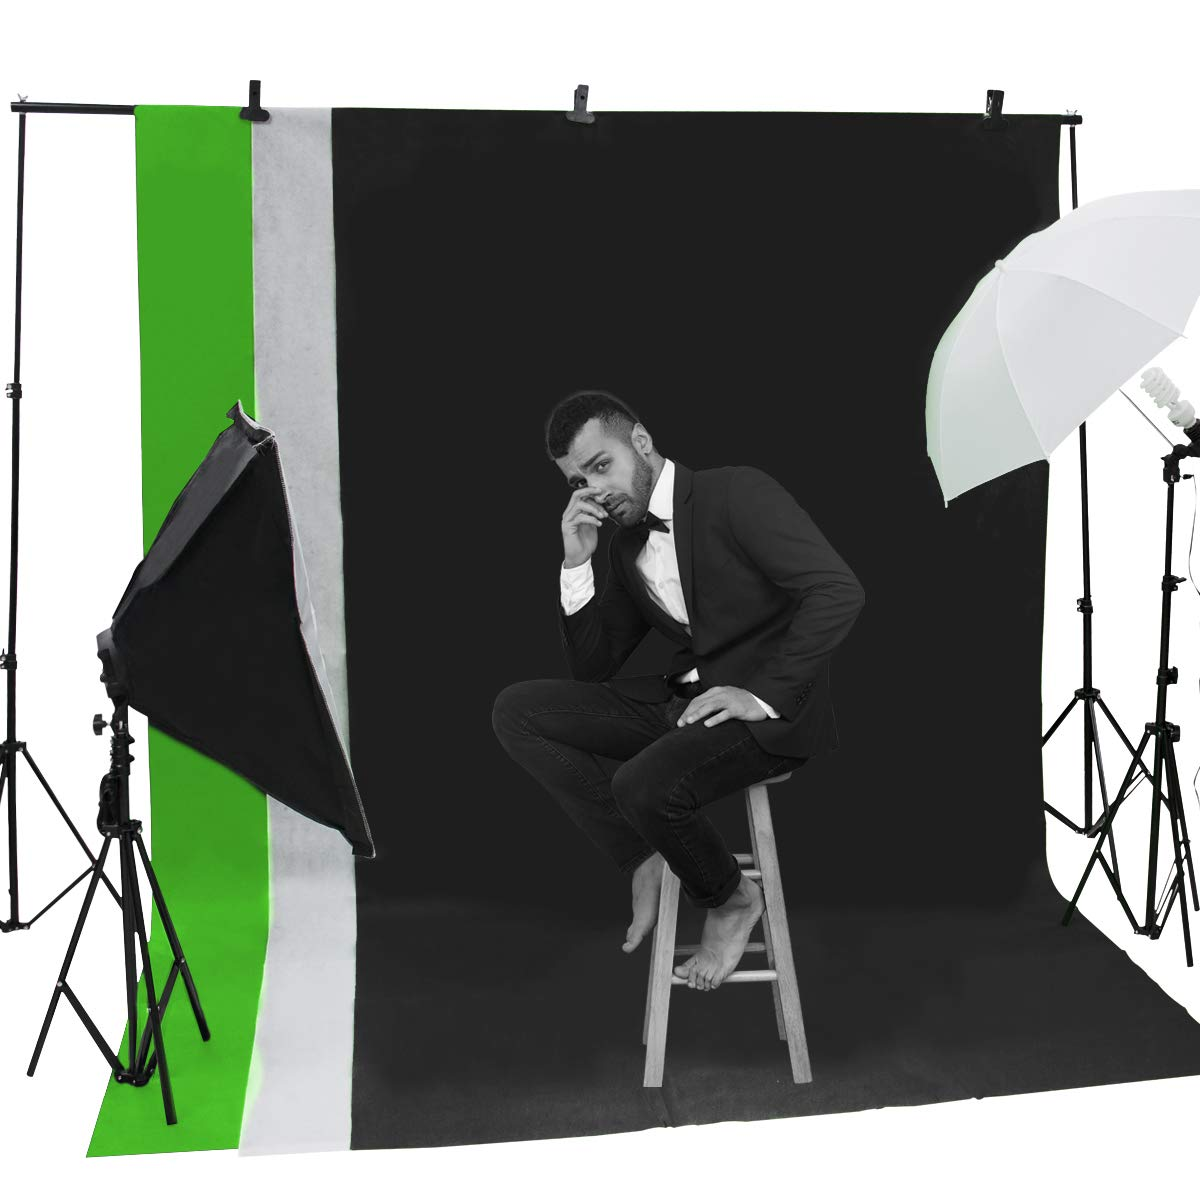 Wisamic Photography Video Studio Lighting Kit, Background Support System 10ft x 6.6ft/2MX3M with 3 Color Backdrop, 3 Umbrella, 3 Softbox, Continuous Lighting Kit for Photo Video Shooting Photography by Wisamic (Image #9)